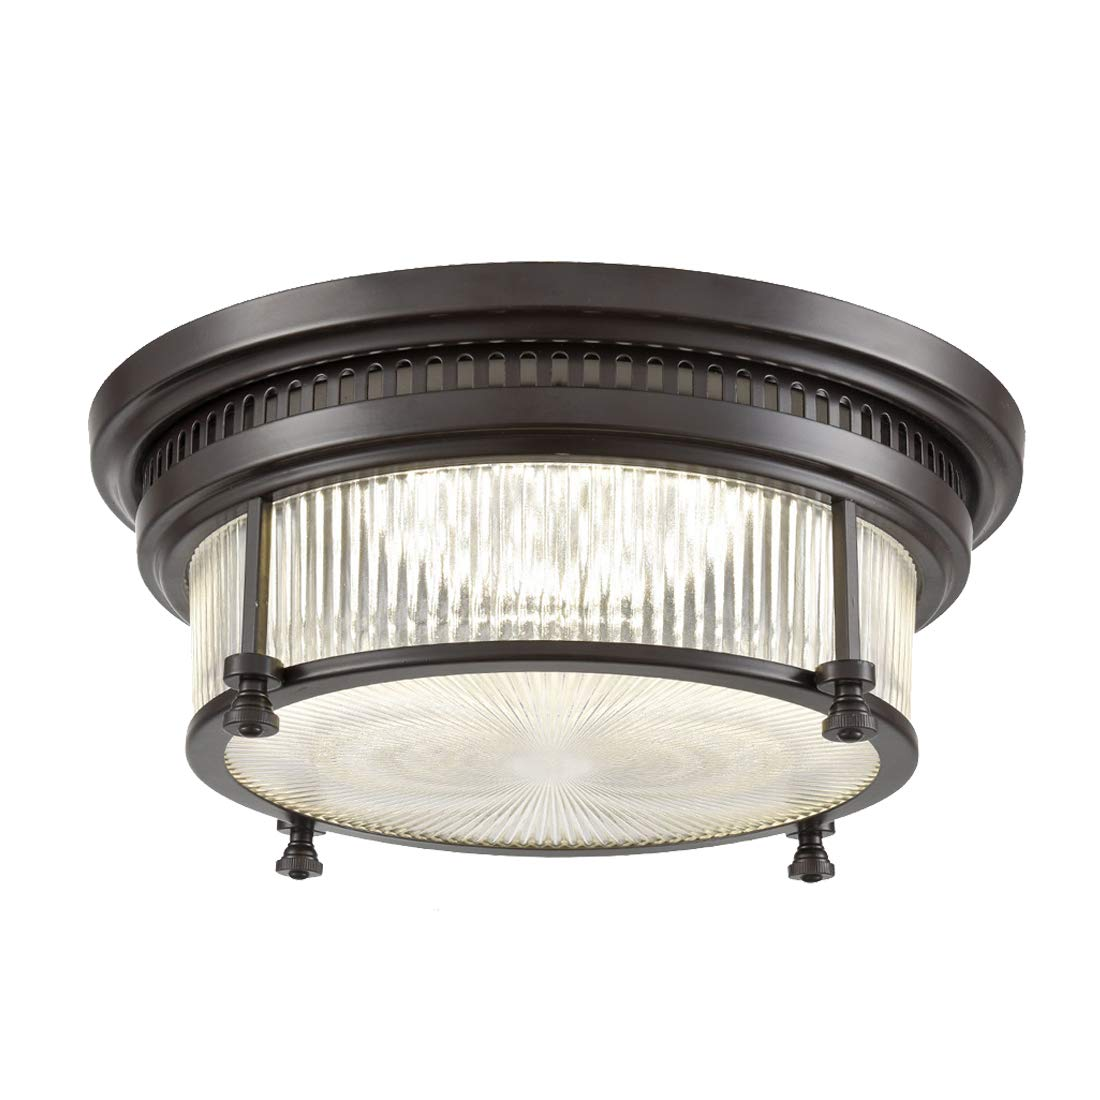 AXILAND Flush Mount Ceiling Lights with Clear Glass, 28W, 2380lm, 4000K Neutral Light, Oil Rubbed Bronze